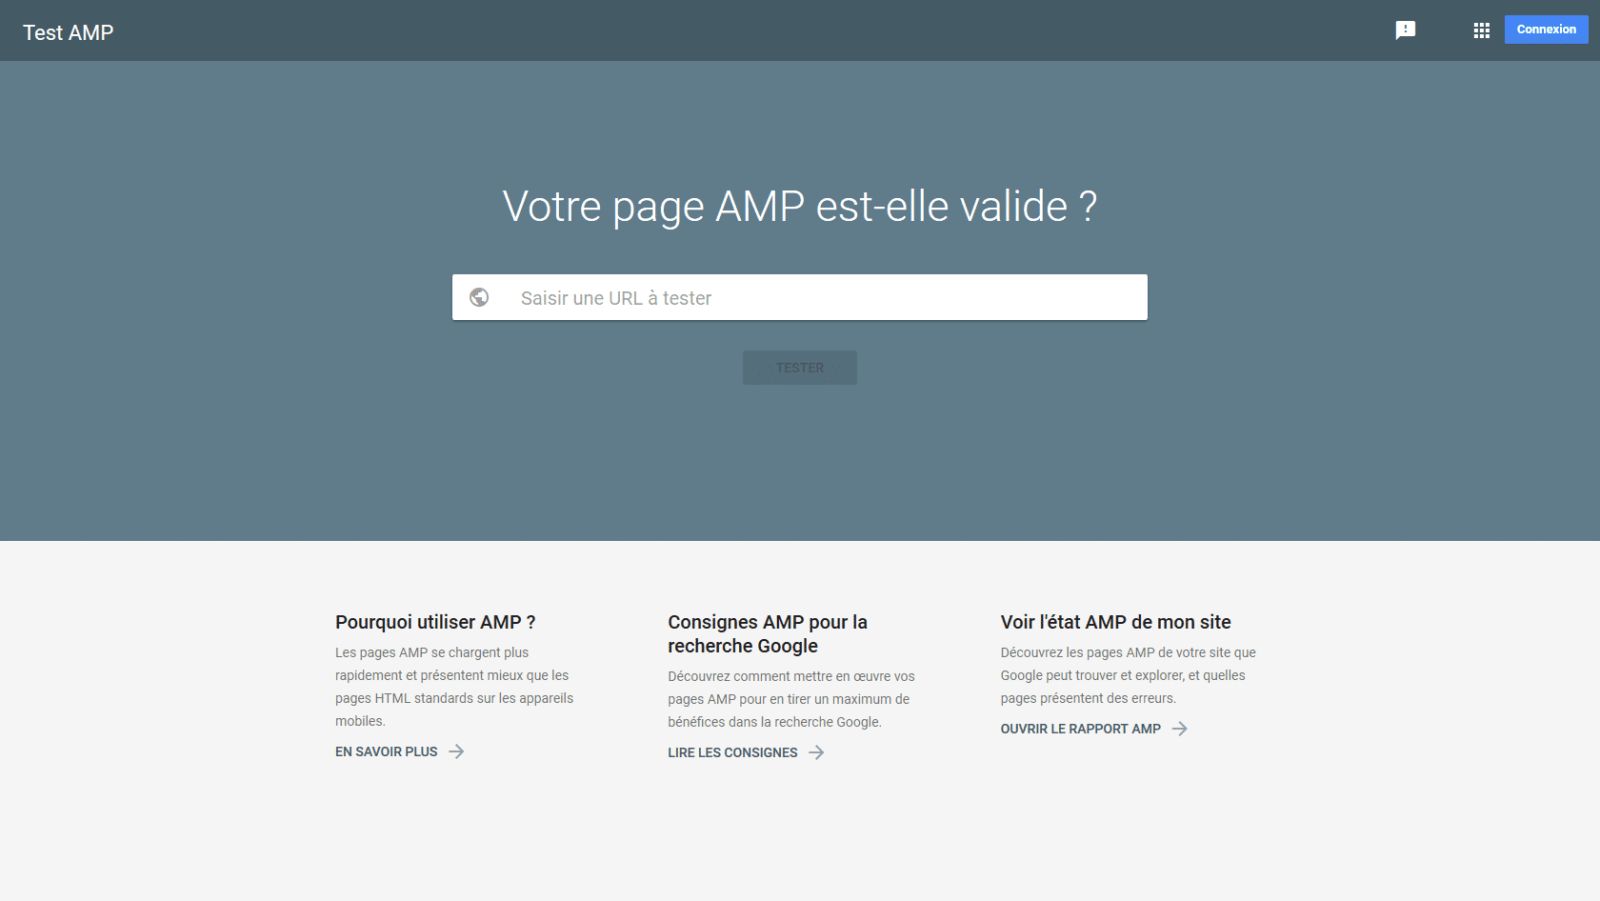 Accueil Test AMP - Google Search Console